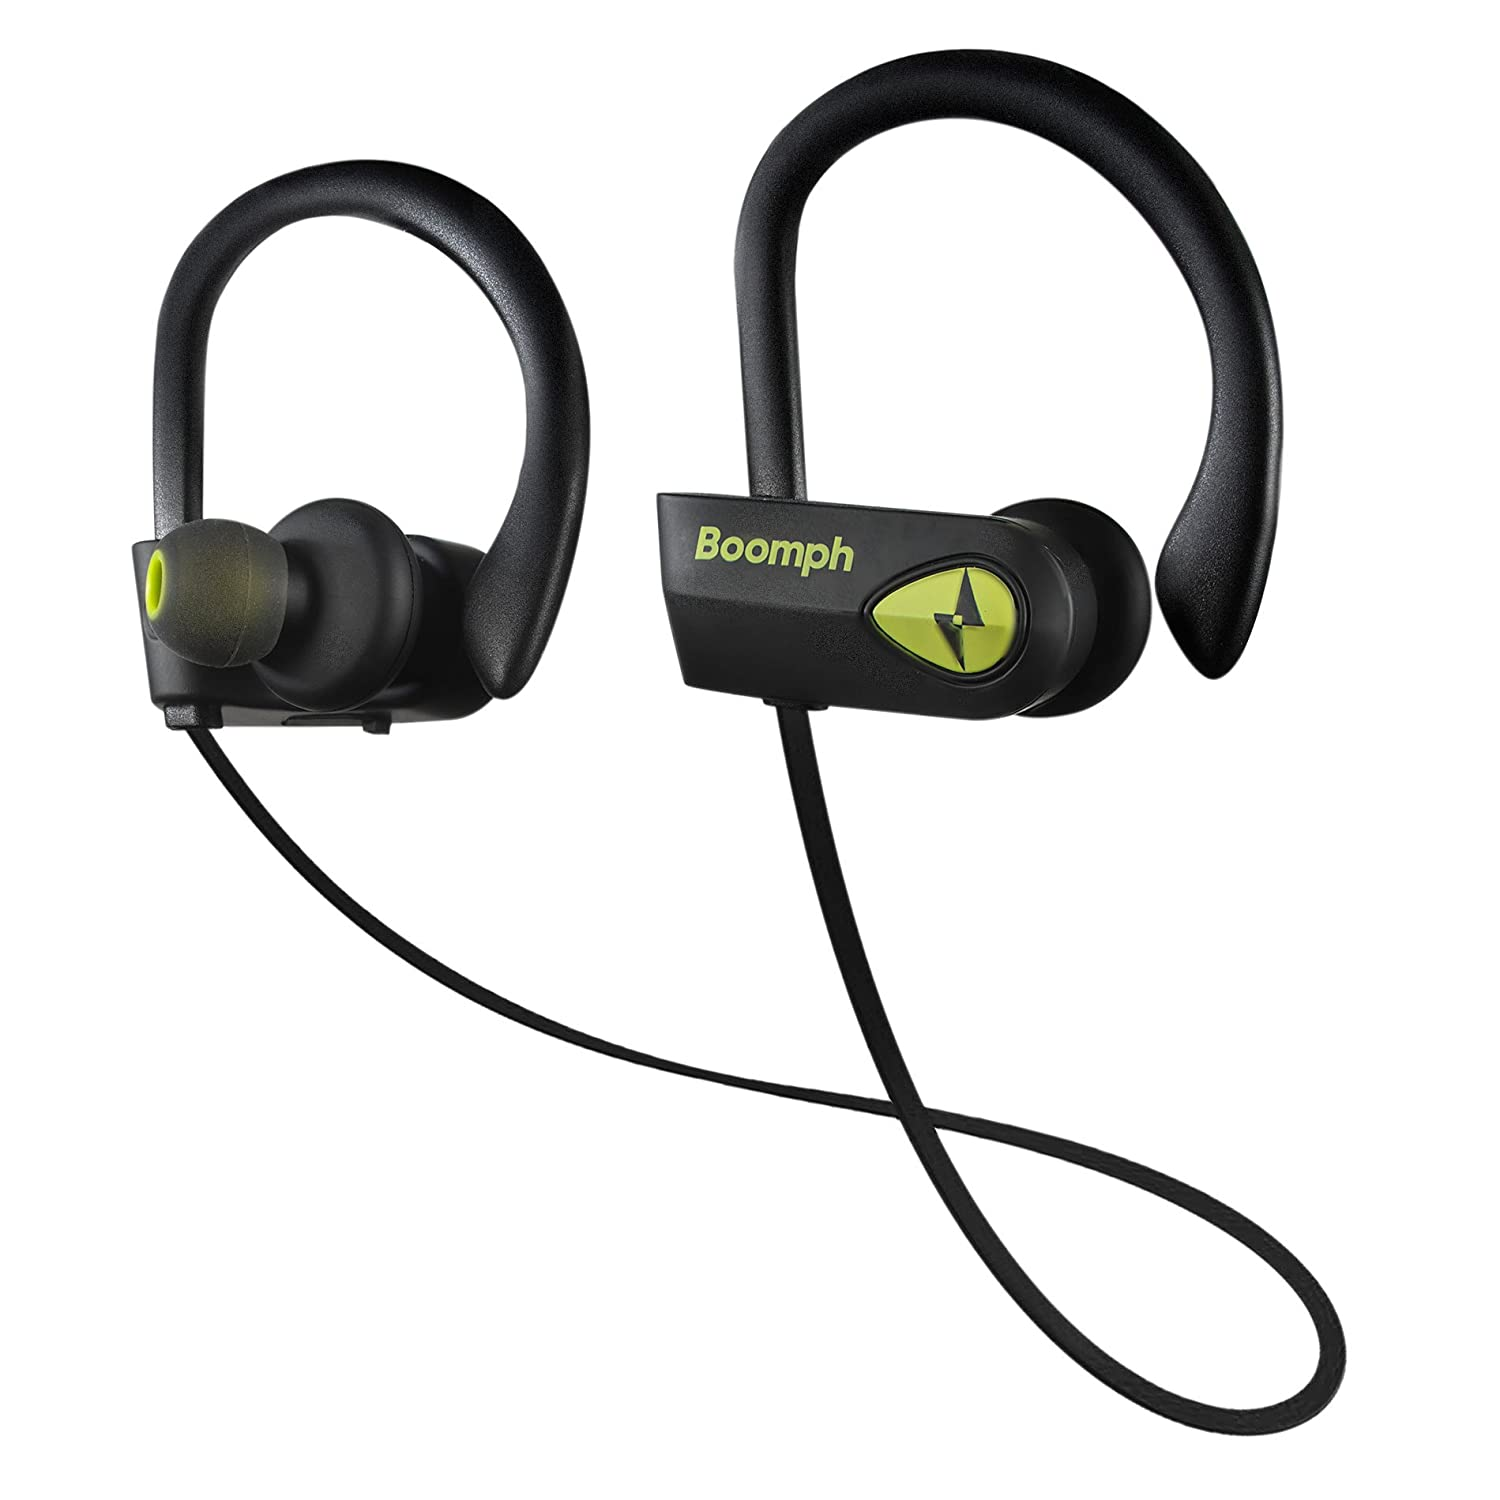 BOOMPH Bluetooth Headphones, Best Wireless Sports Earphones w Mic IPX7 Waterproof HD Stereo Sweatproof Earbuds for Gym Running Workout 8 Hour Battery Noise Cancelling Headsets